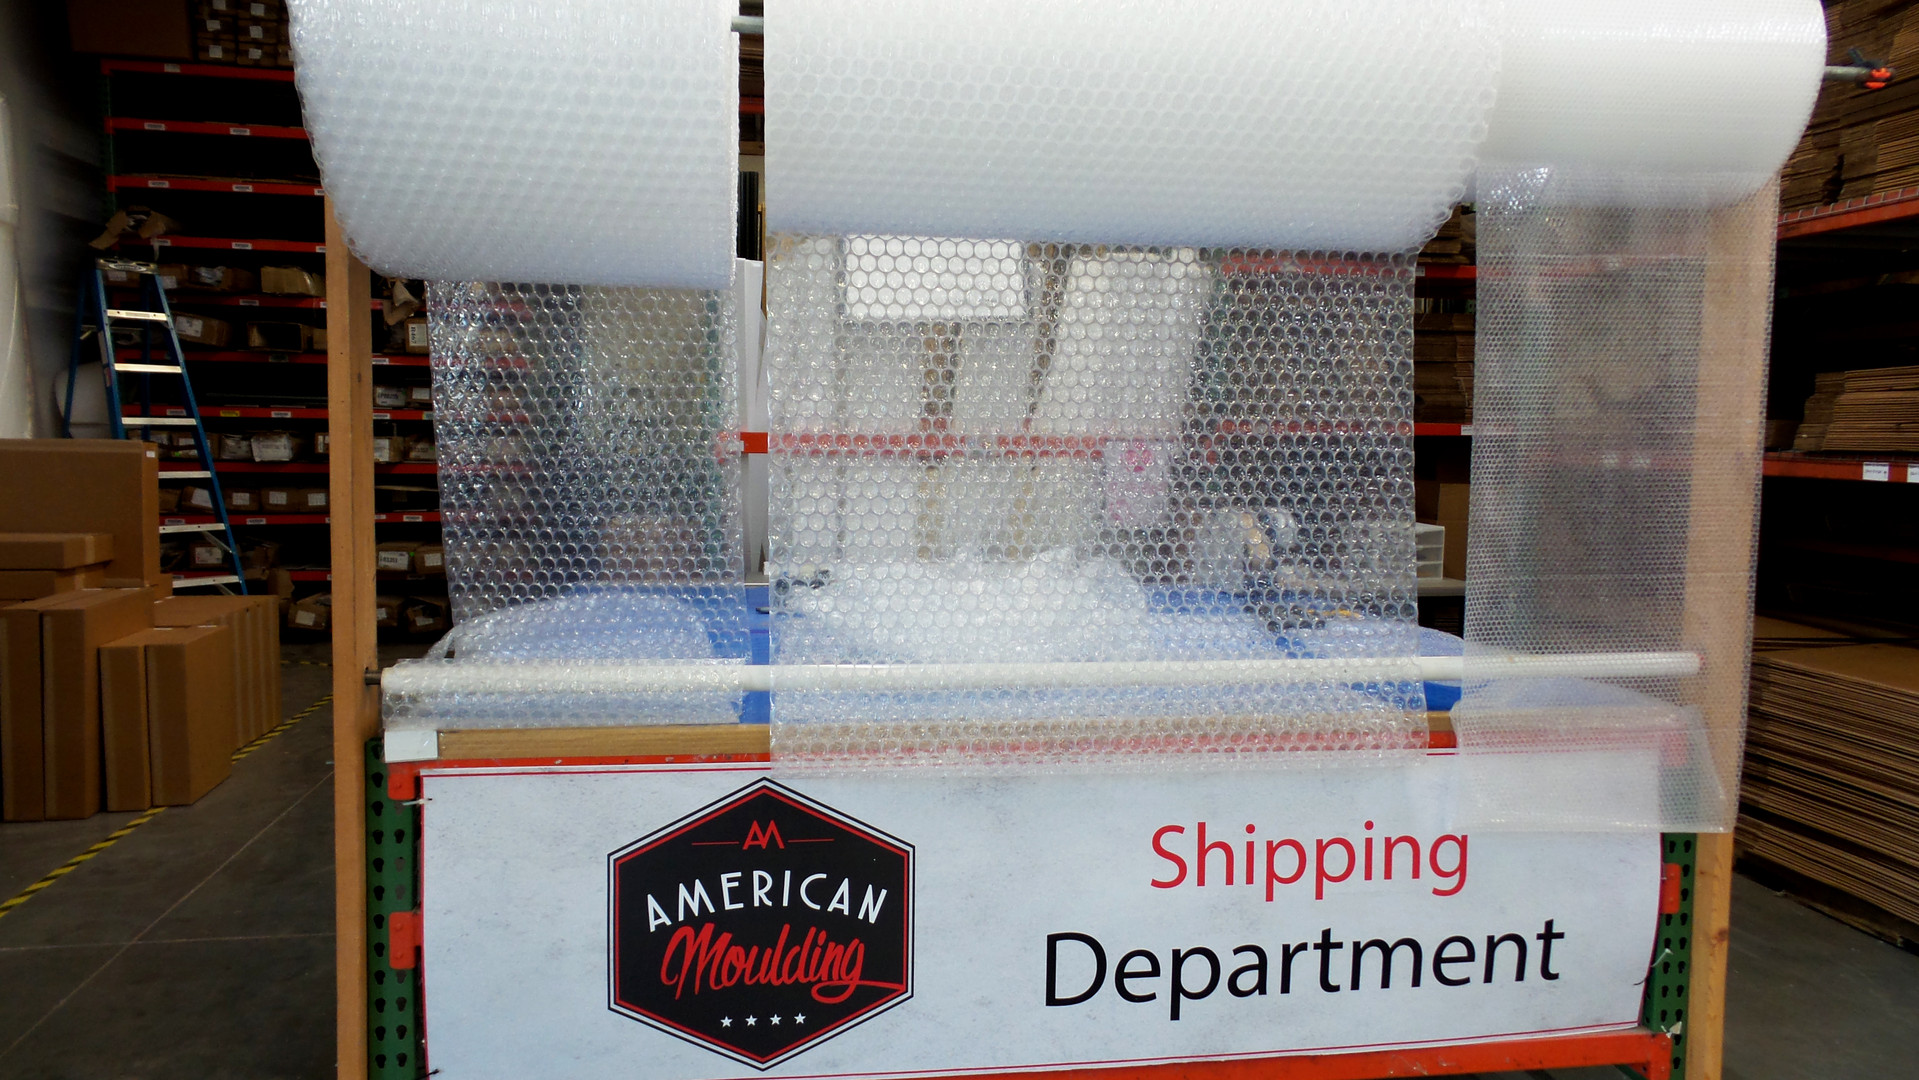 Shipping Department